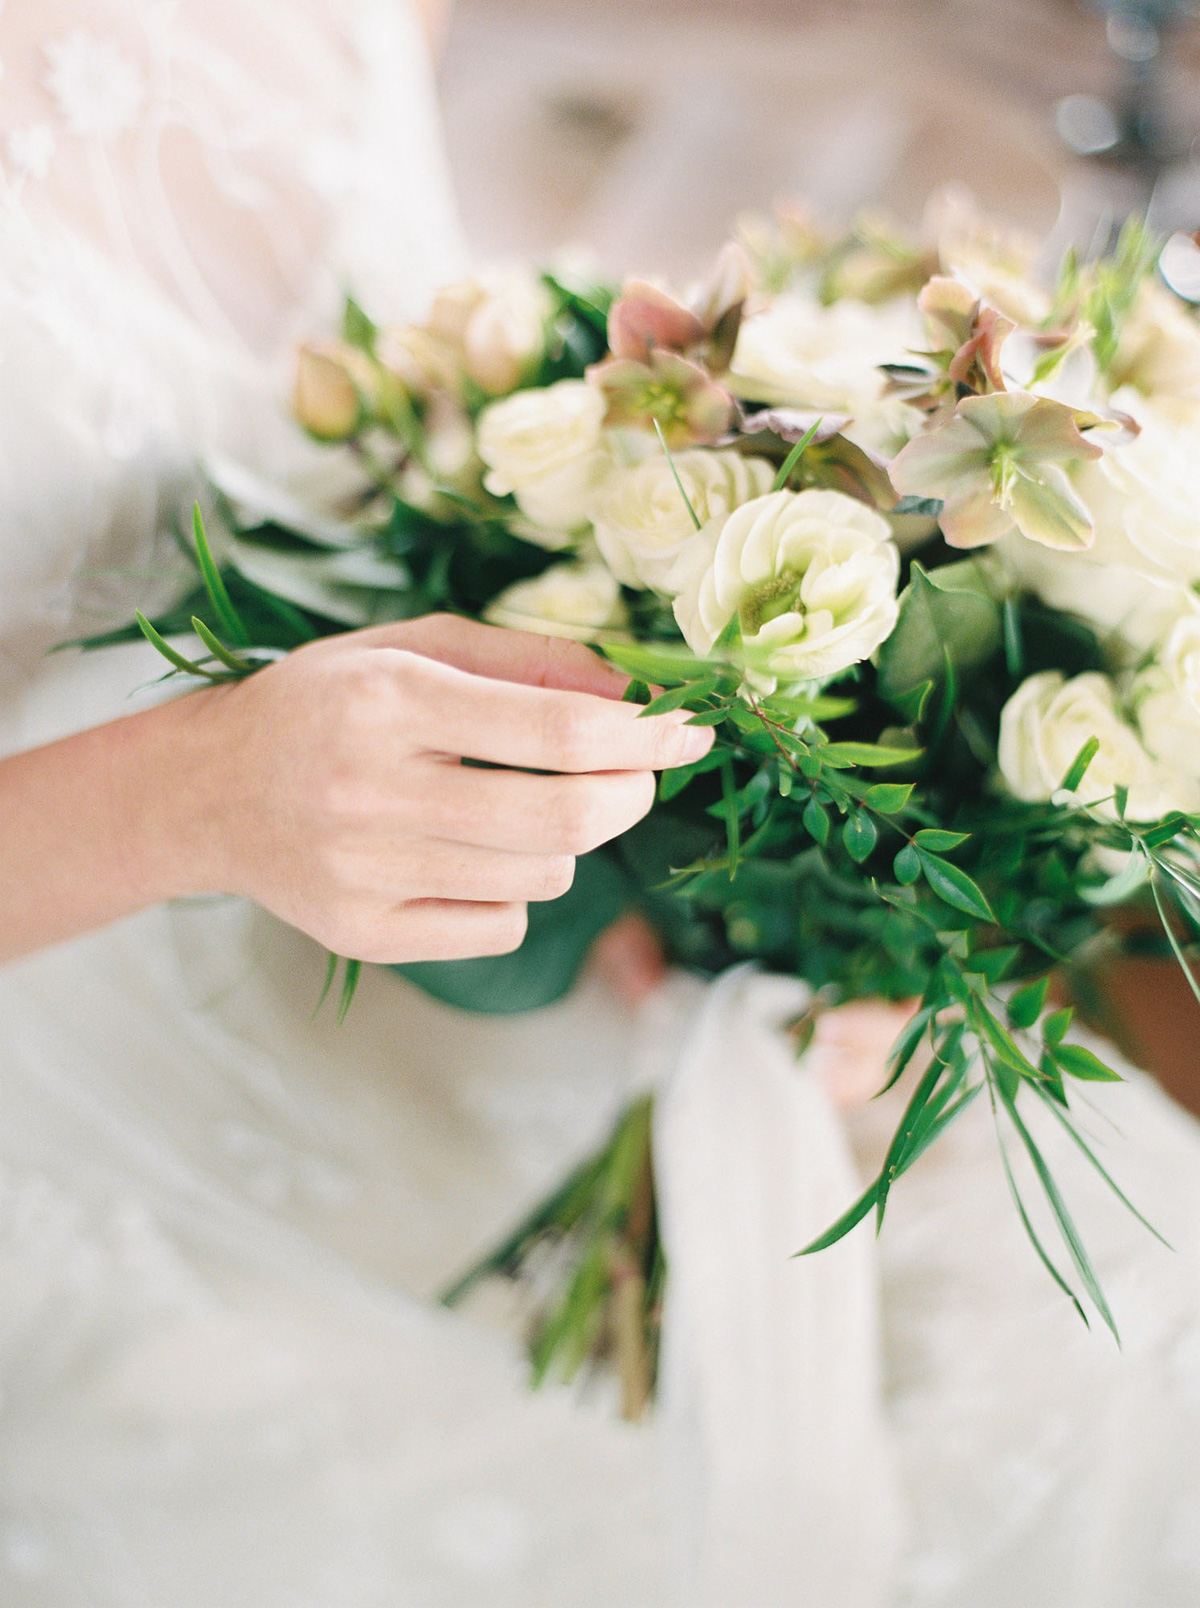 will-reid-photo-vineyard-bride-swish-list-kurtz-orchards-market-niagara-on-the-lake-wedding-editorial-24.jpg